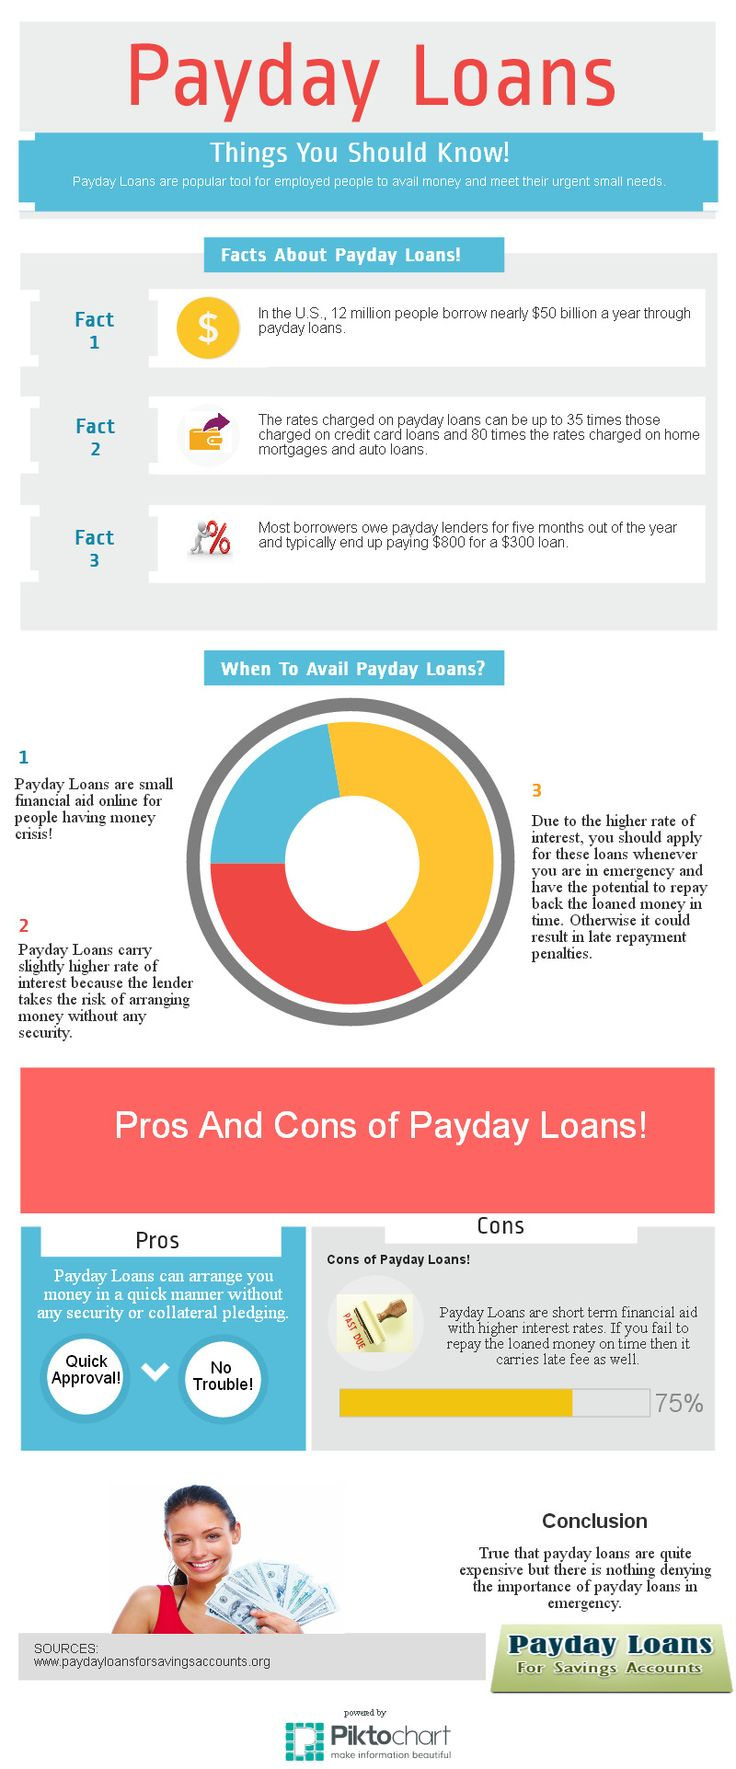 Details of Payday Loans!